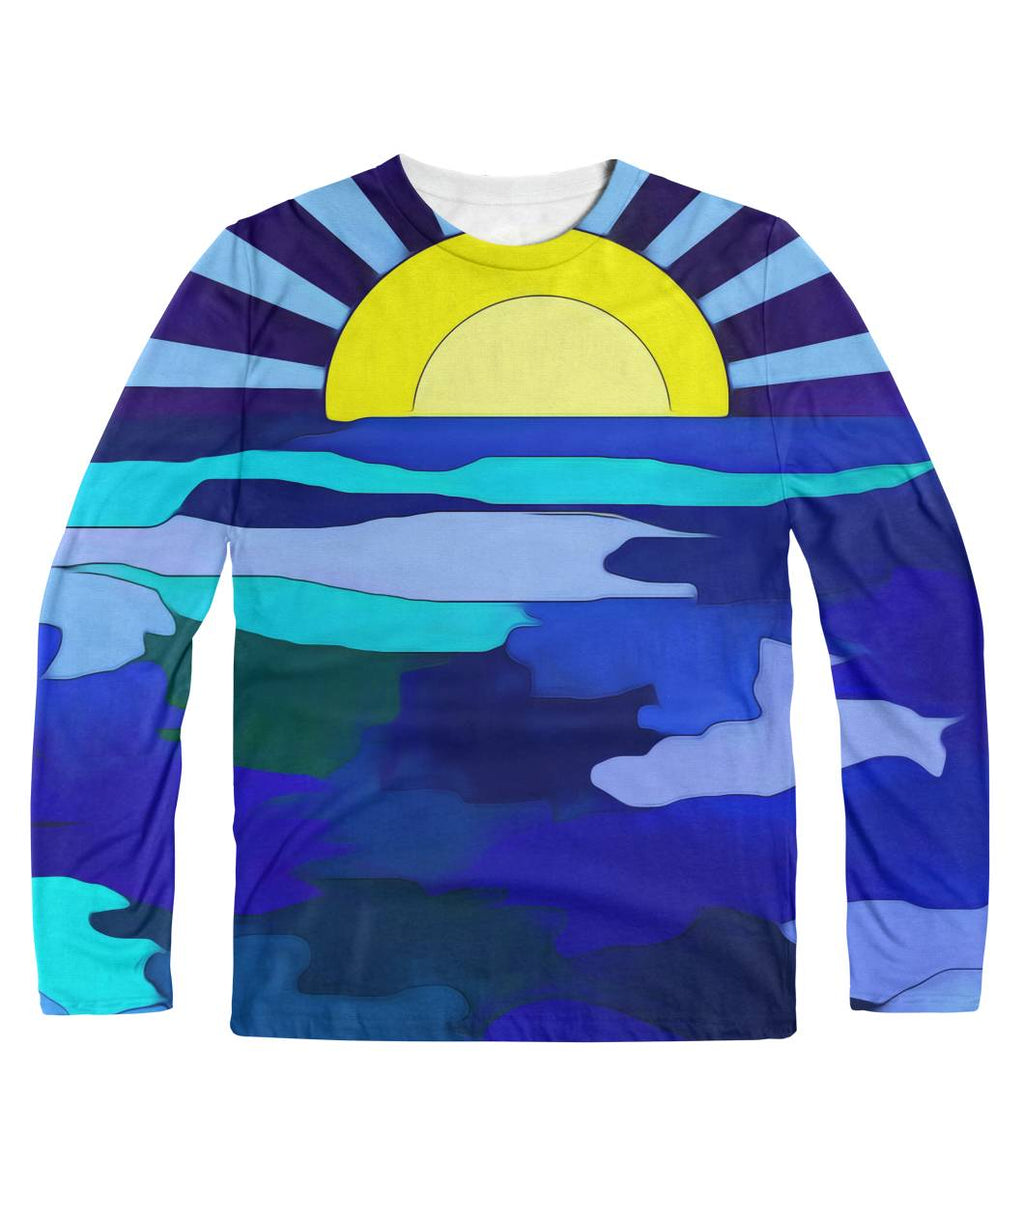 Sunset On The Lake Longsleeve Sublimation Long Sleeve